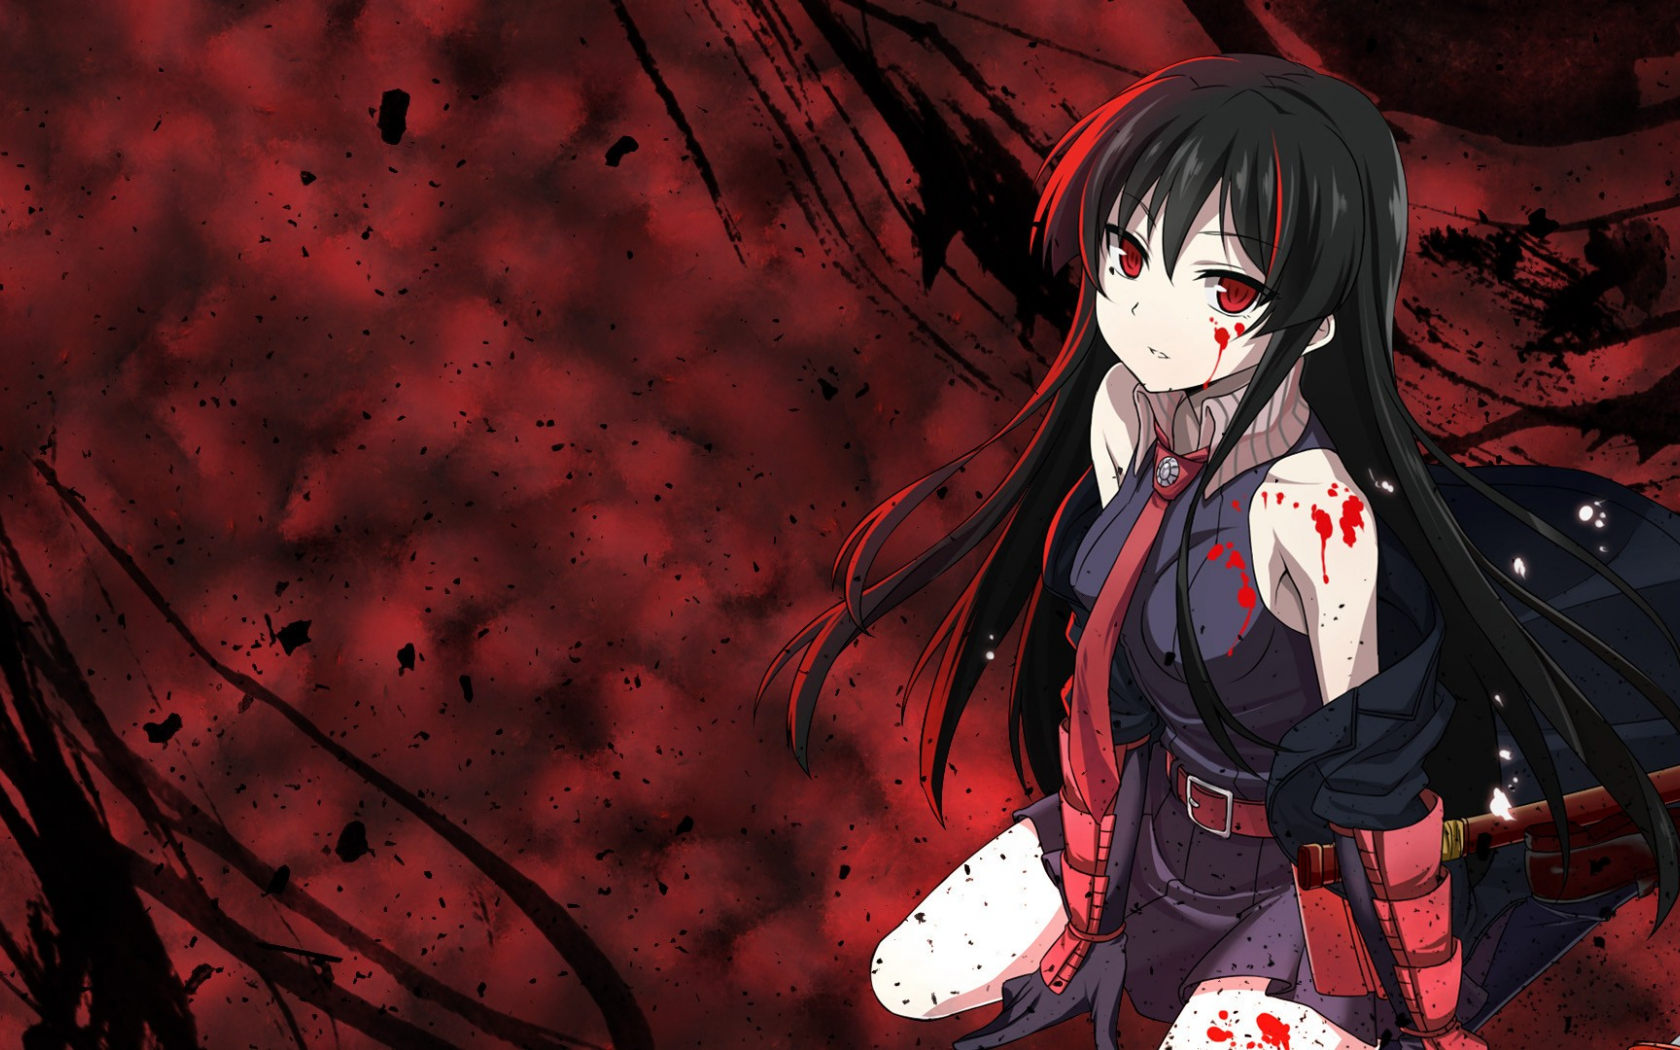 Free Download Anime Girls Akame Ga Kill Akame Wallpaper Anime